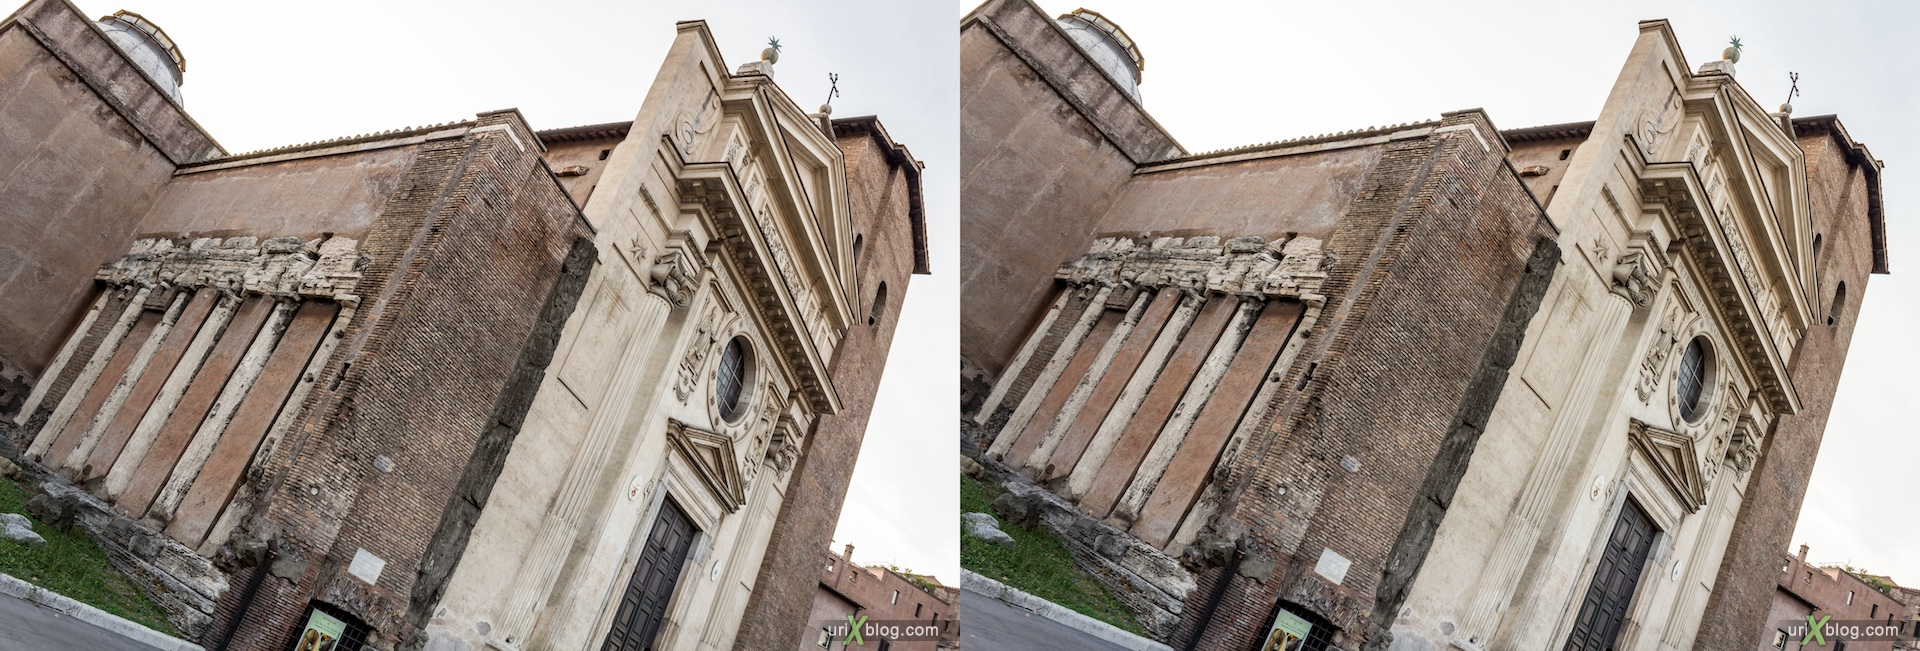 2012, church of San Nicola in Carcere, Rome, Italy, cathedral, monastery, Christianity, Catholicism, 3D, stereo pair, cross-eyed, crossview, cross view stereo pair